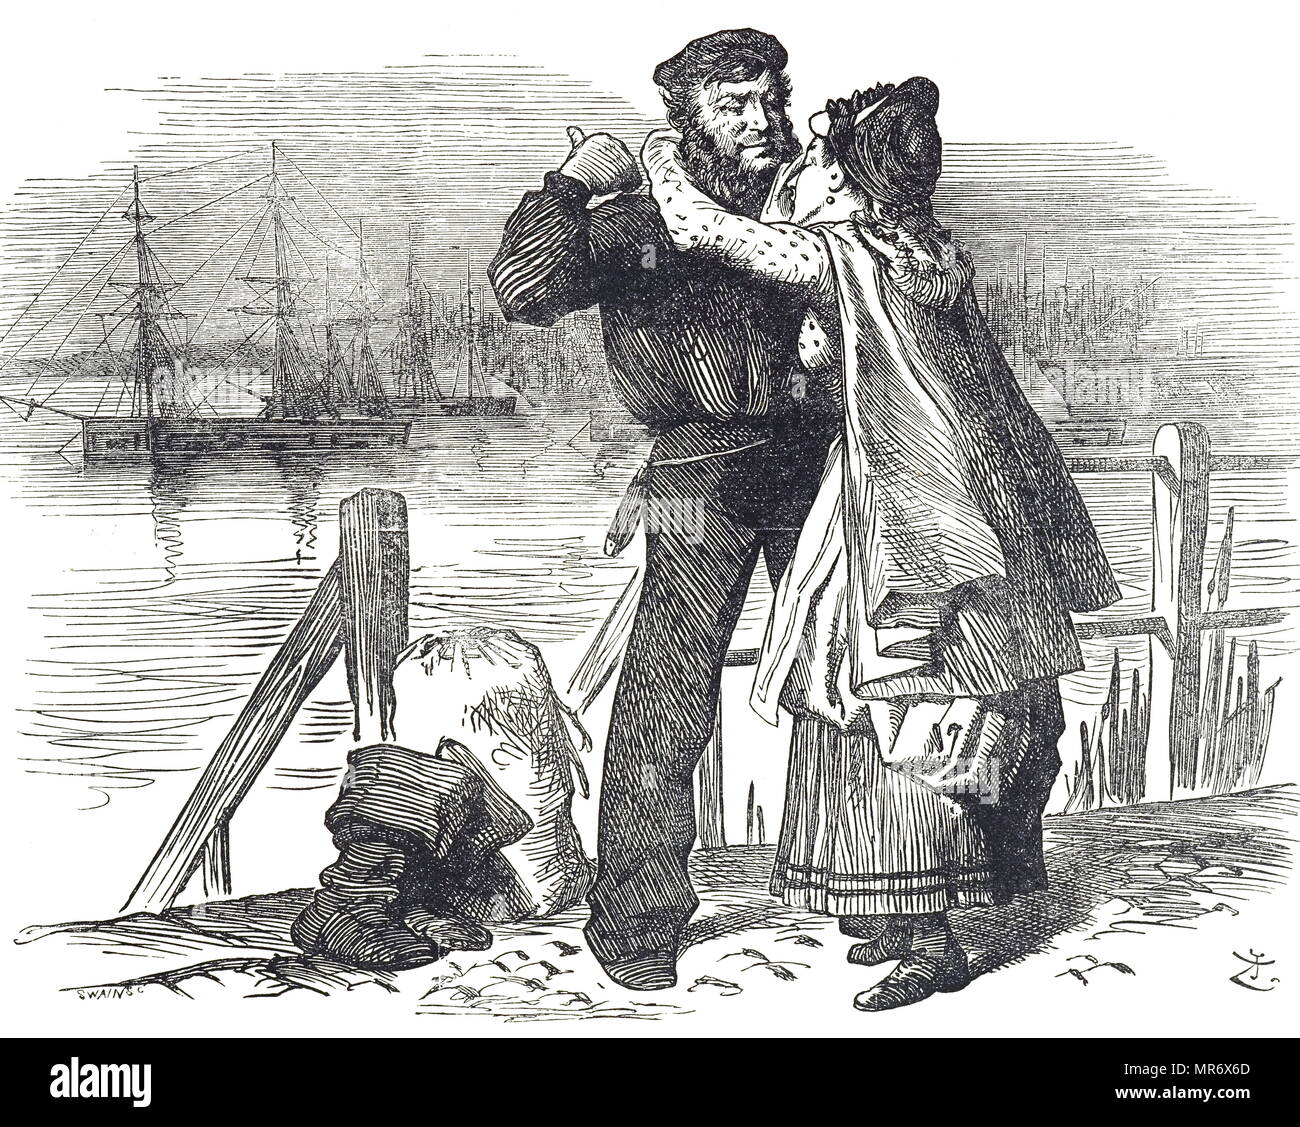 A sailor's tribute to Samuel Plimsoll (1824-1898), an English politician and social reformer, for the work he did whilst MP for Derby in bringing in legislation regulating the loading and sea-worthiness of merchant ships. It was for him that Plimsoll Line was named. Illustrated by John Tenniel (1820-1914) an English illustrator, graphic humourist, and political cartoonist. Dated 19th century - Stock Image